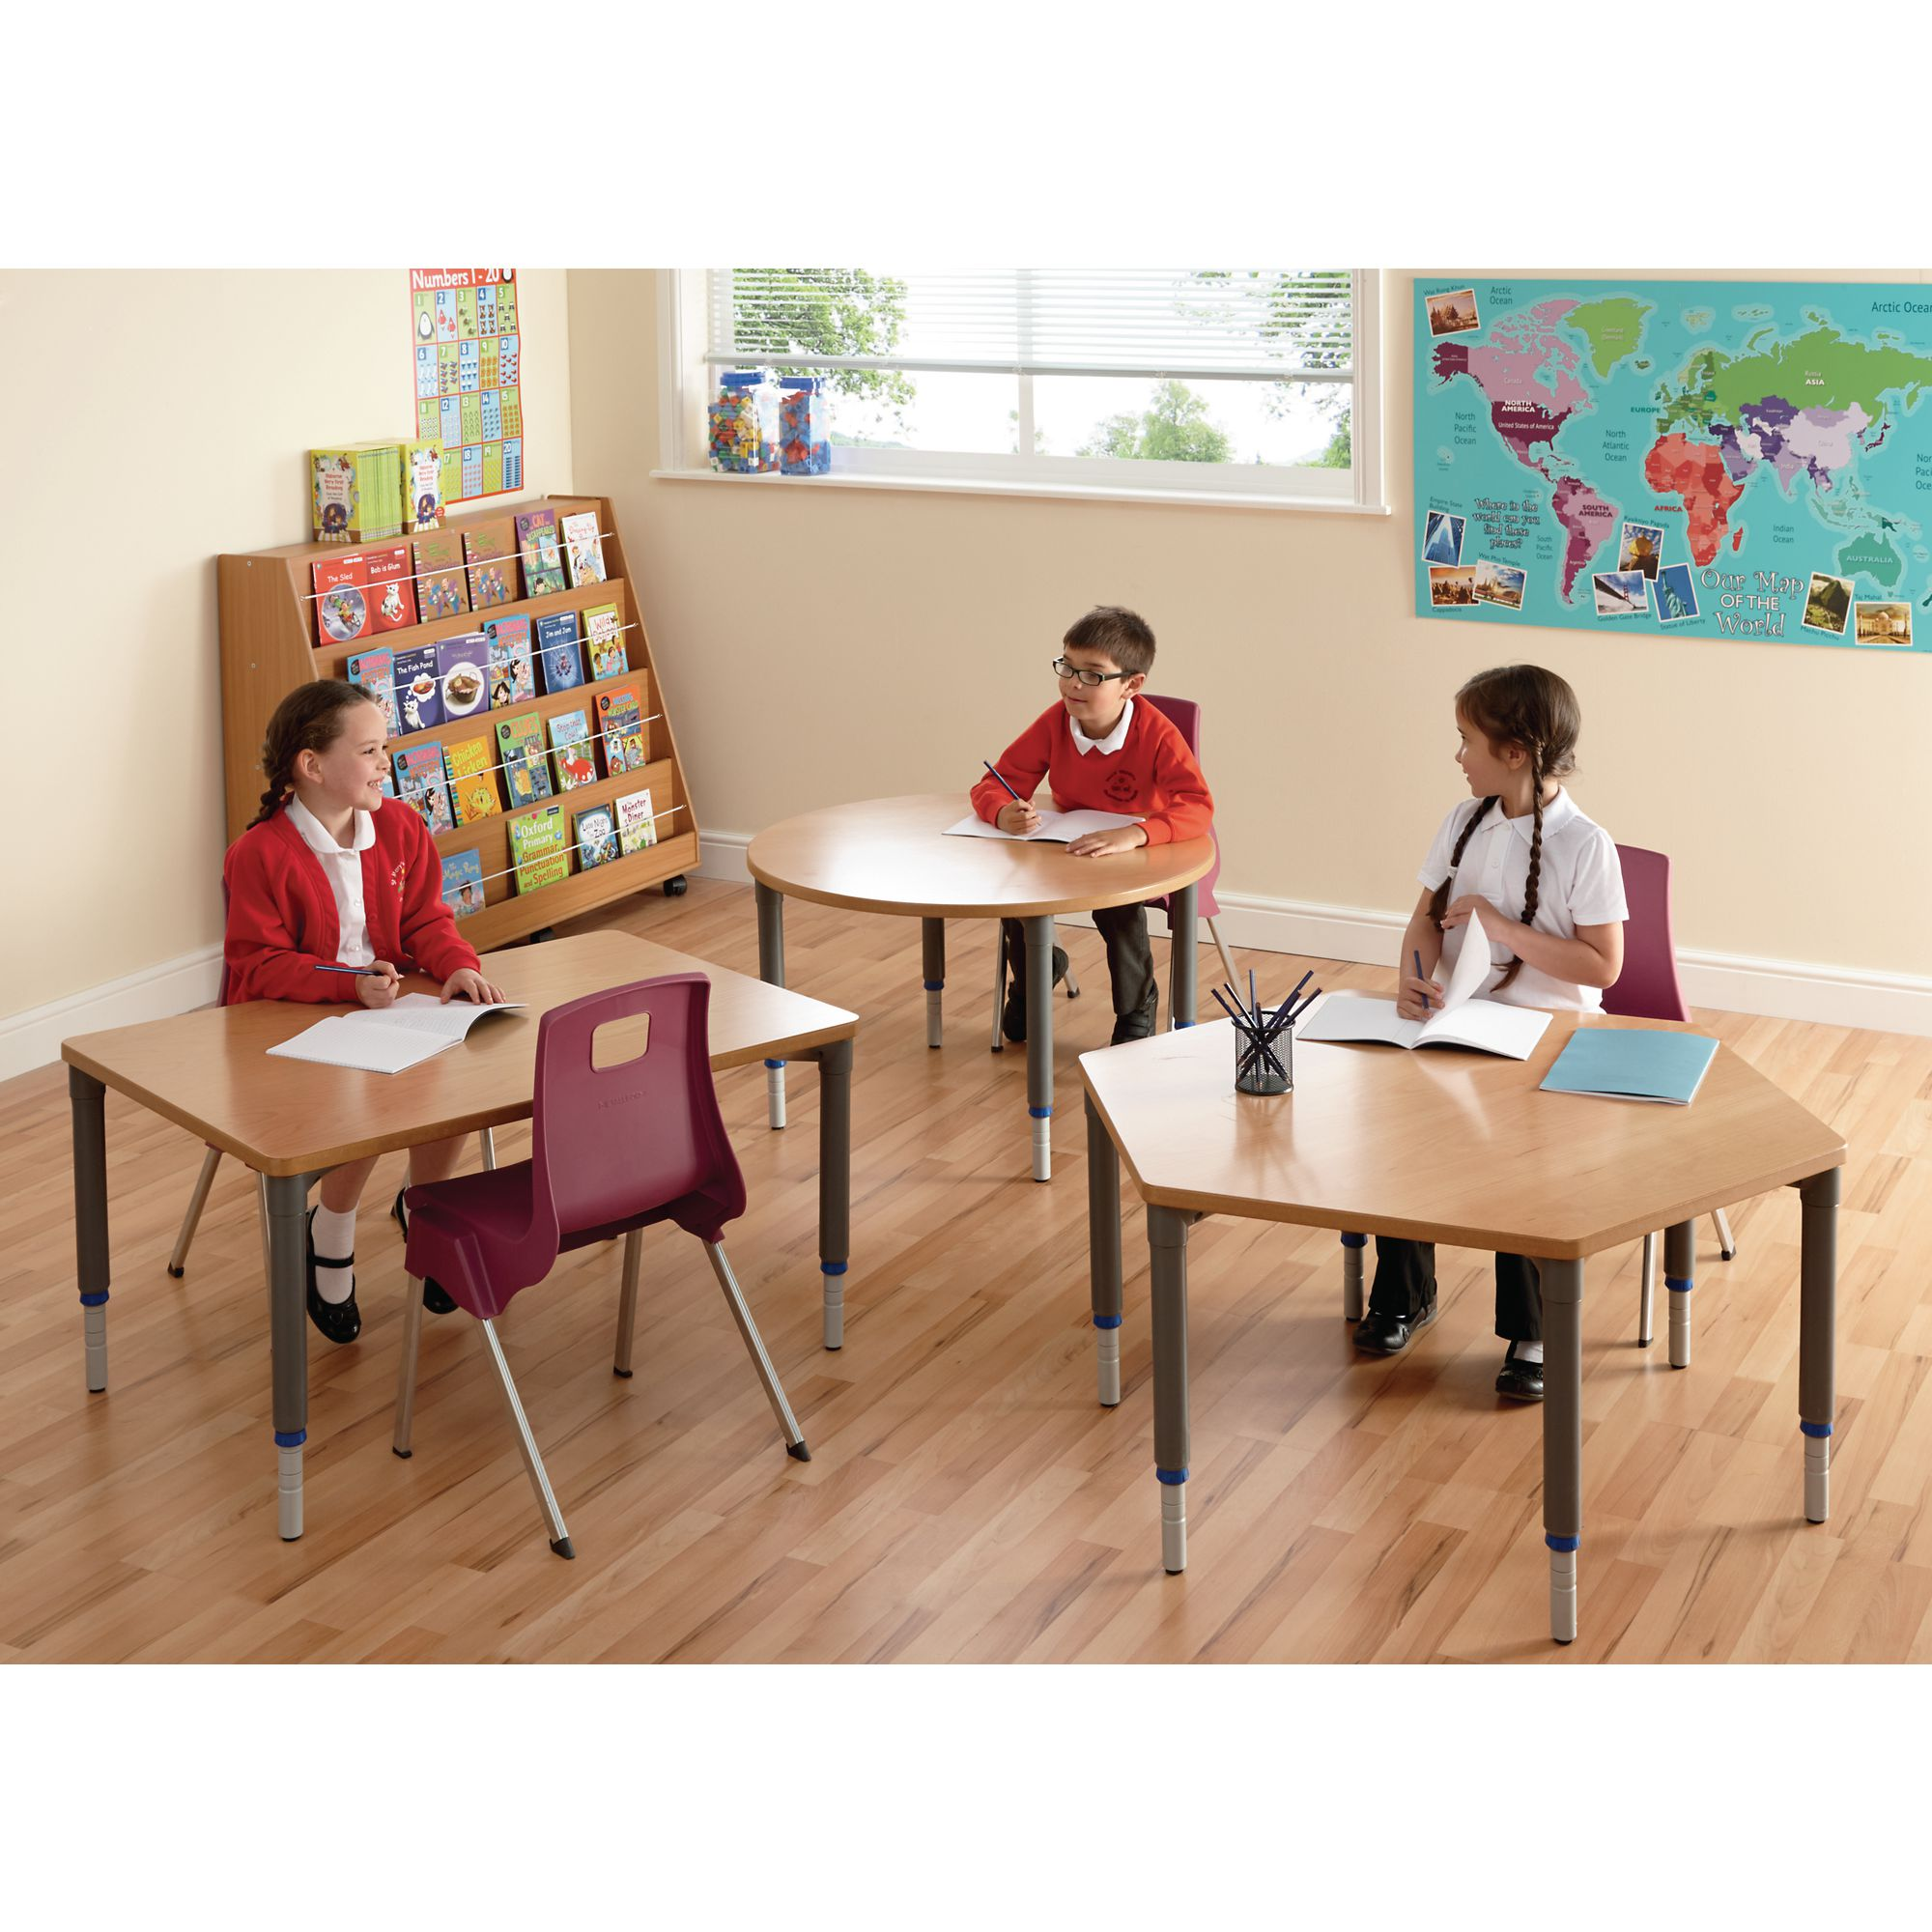 Table Polypropylène Galt Rectangular Height Adjustable Wood Polypropylene Classroom Table 1000 X 700 X 405 To 640mm Beech Ea